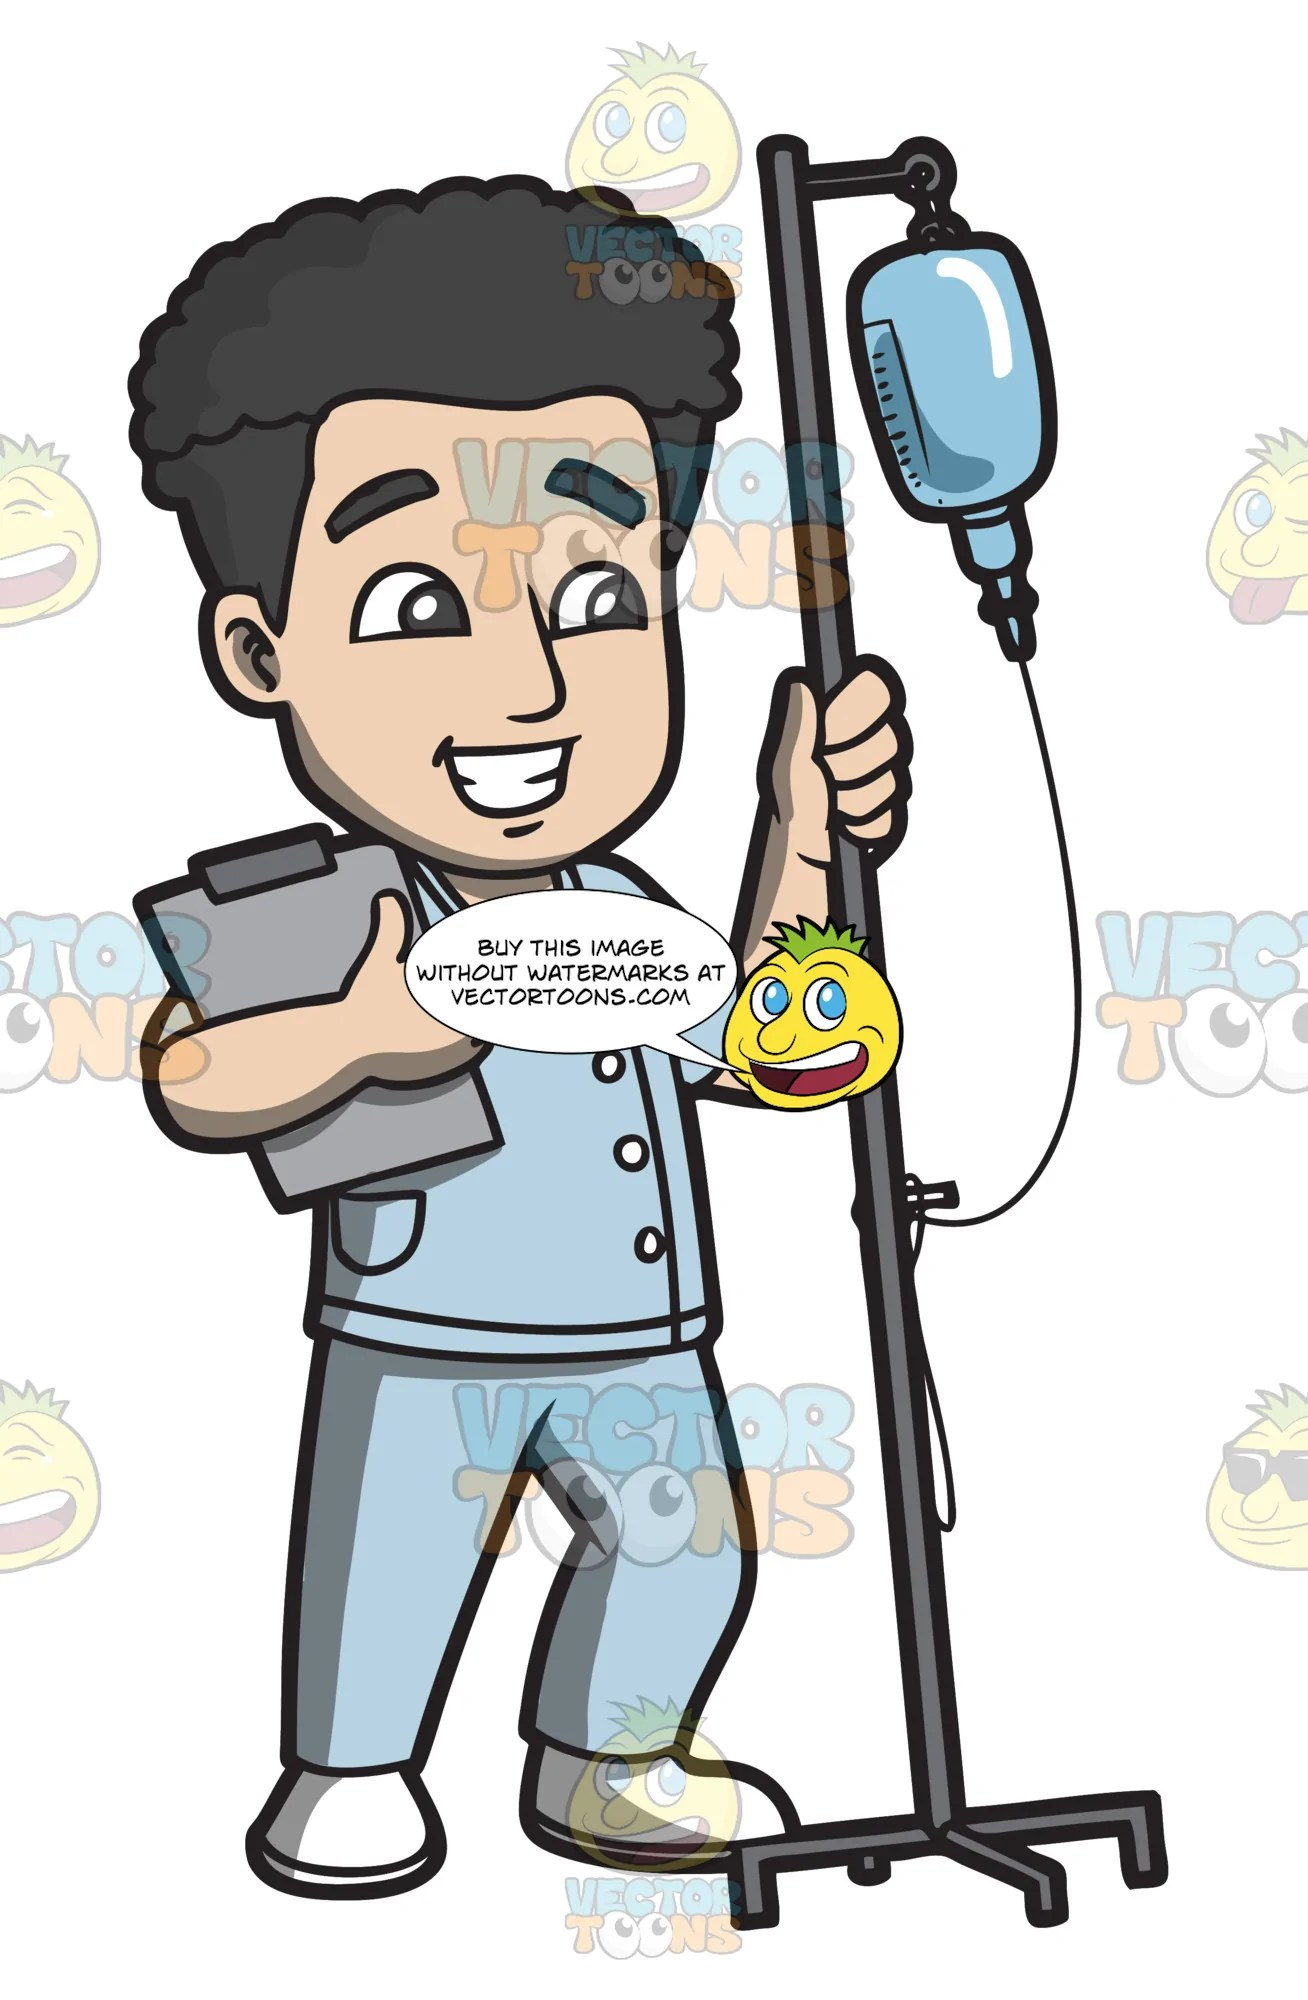 hight resolution of a male nurse carrying an intravenous fluid to a patient clipart cartoons by vectortoons